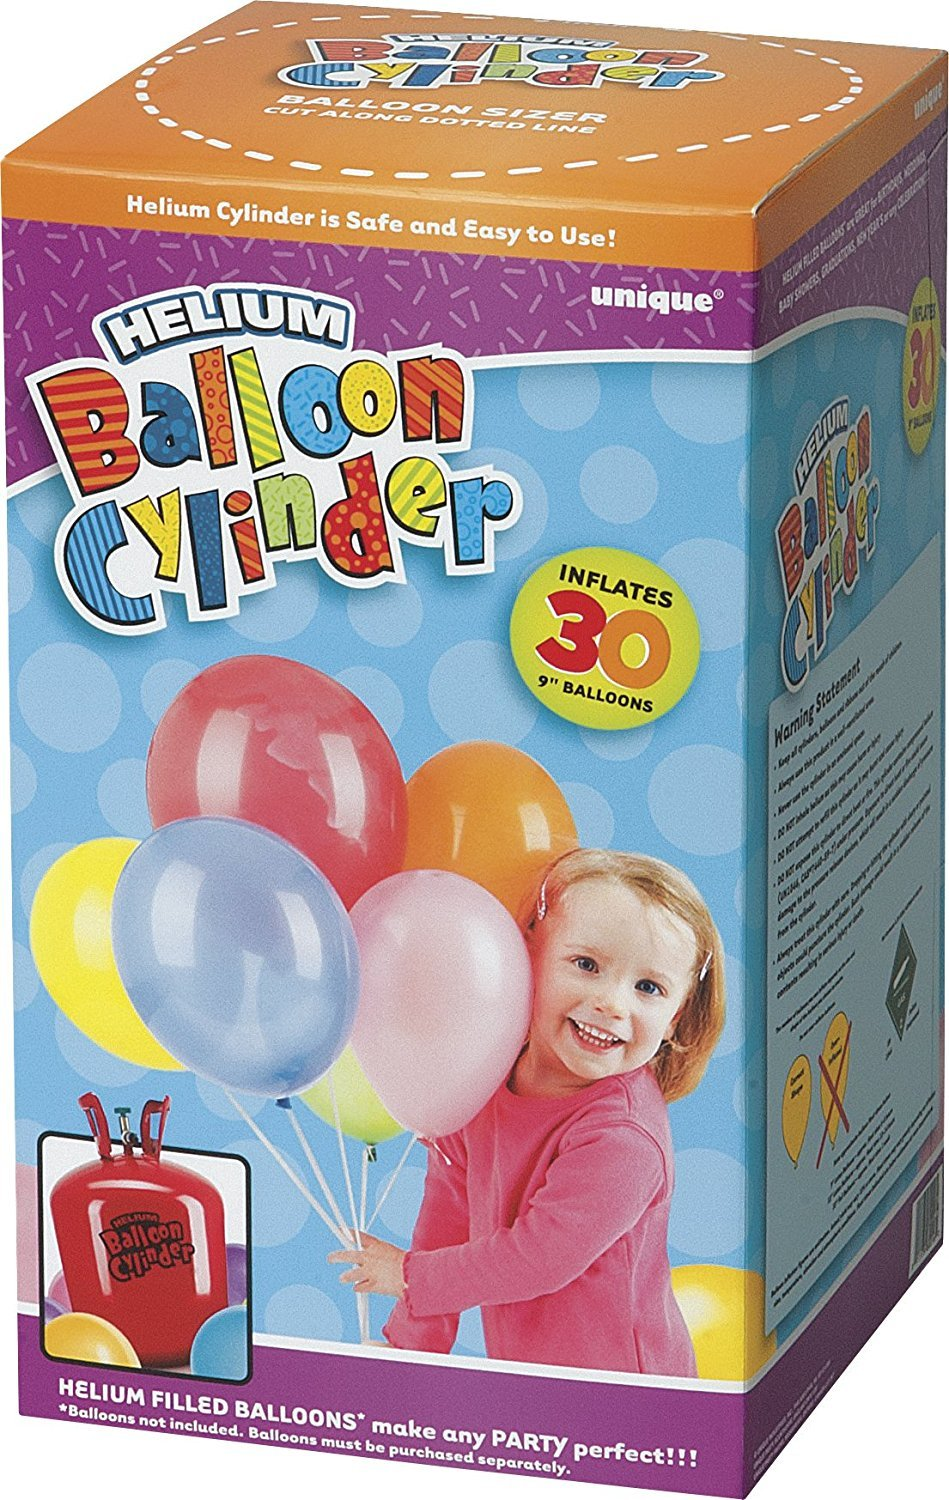 Unique Party 80016 - Small Disposable Helium Canister to fill 30 x 9' Helium Balloons